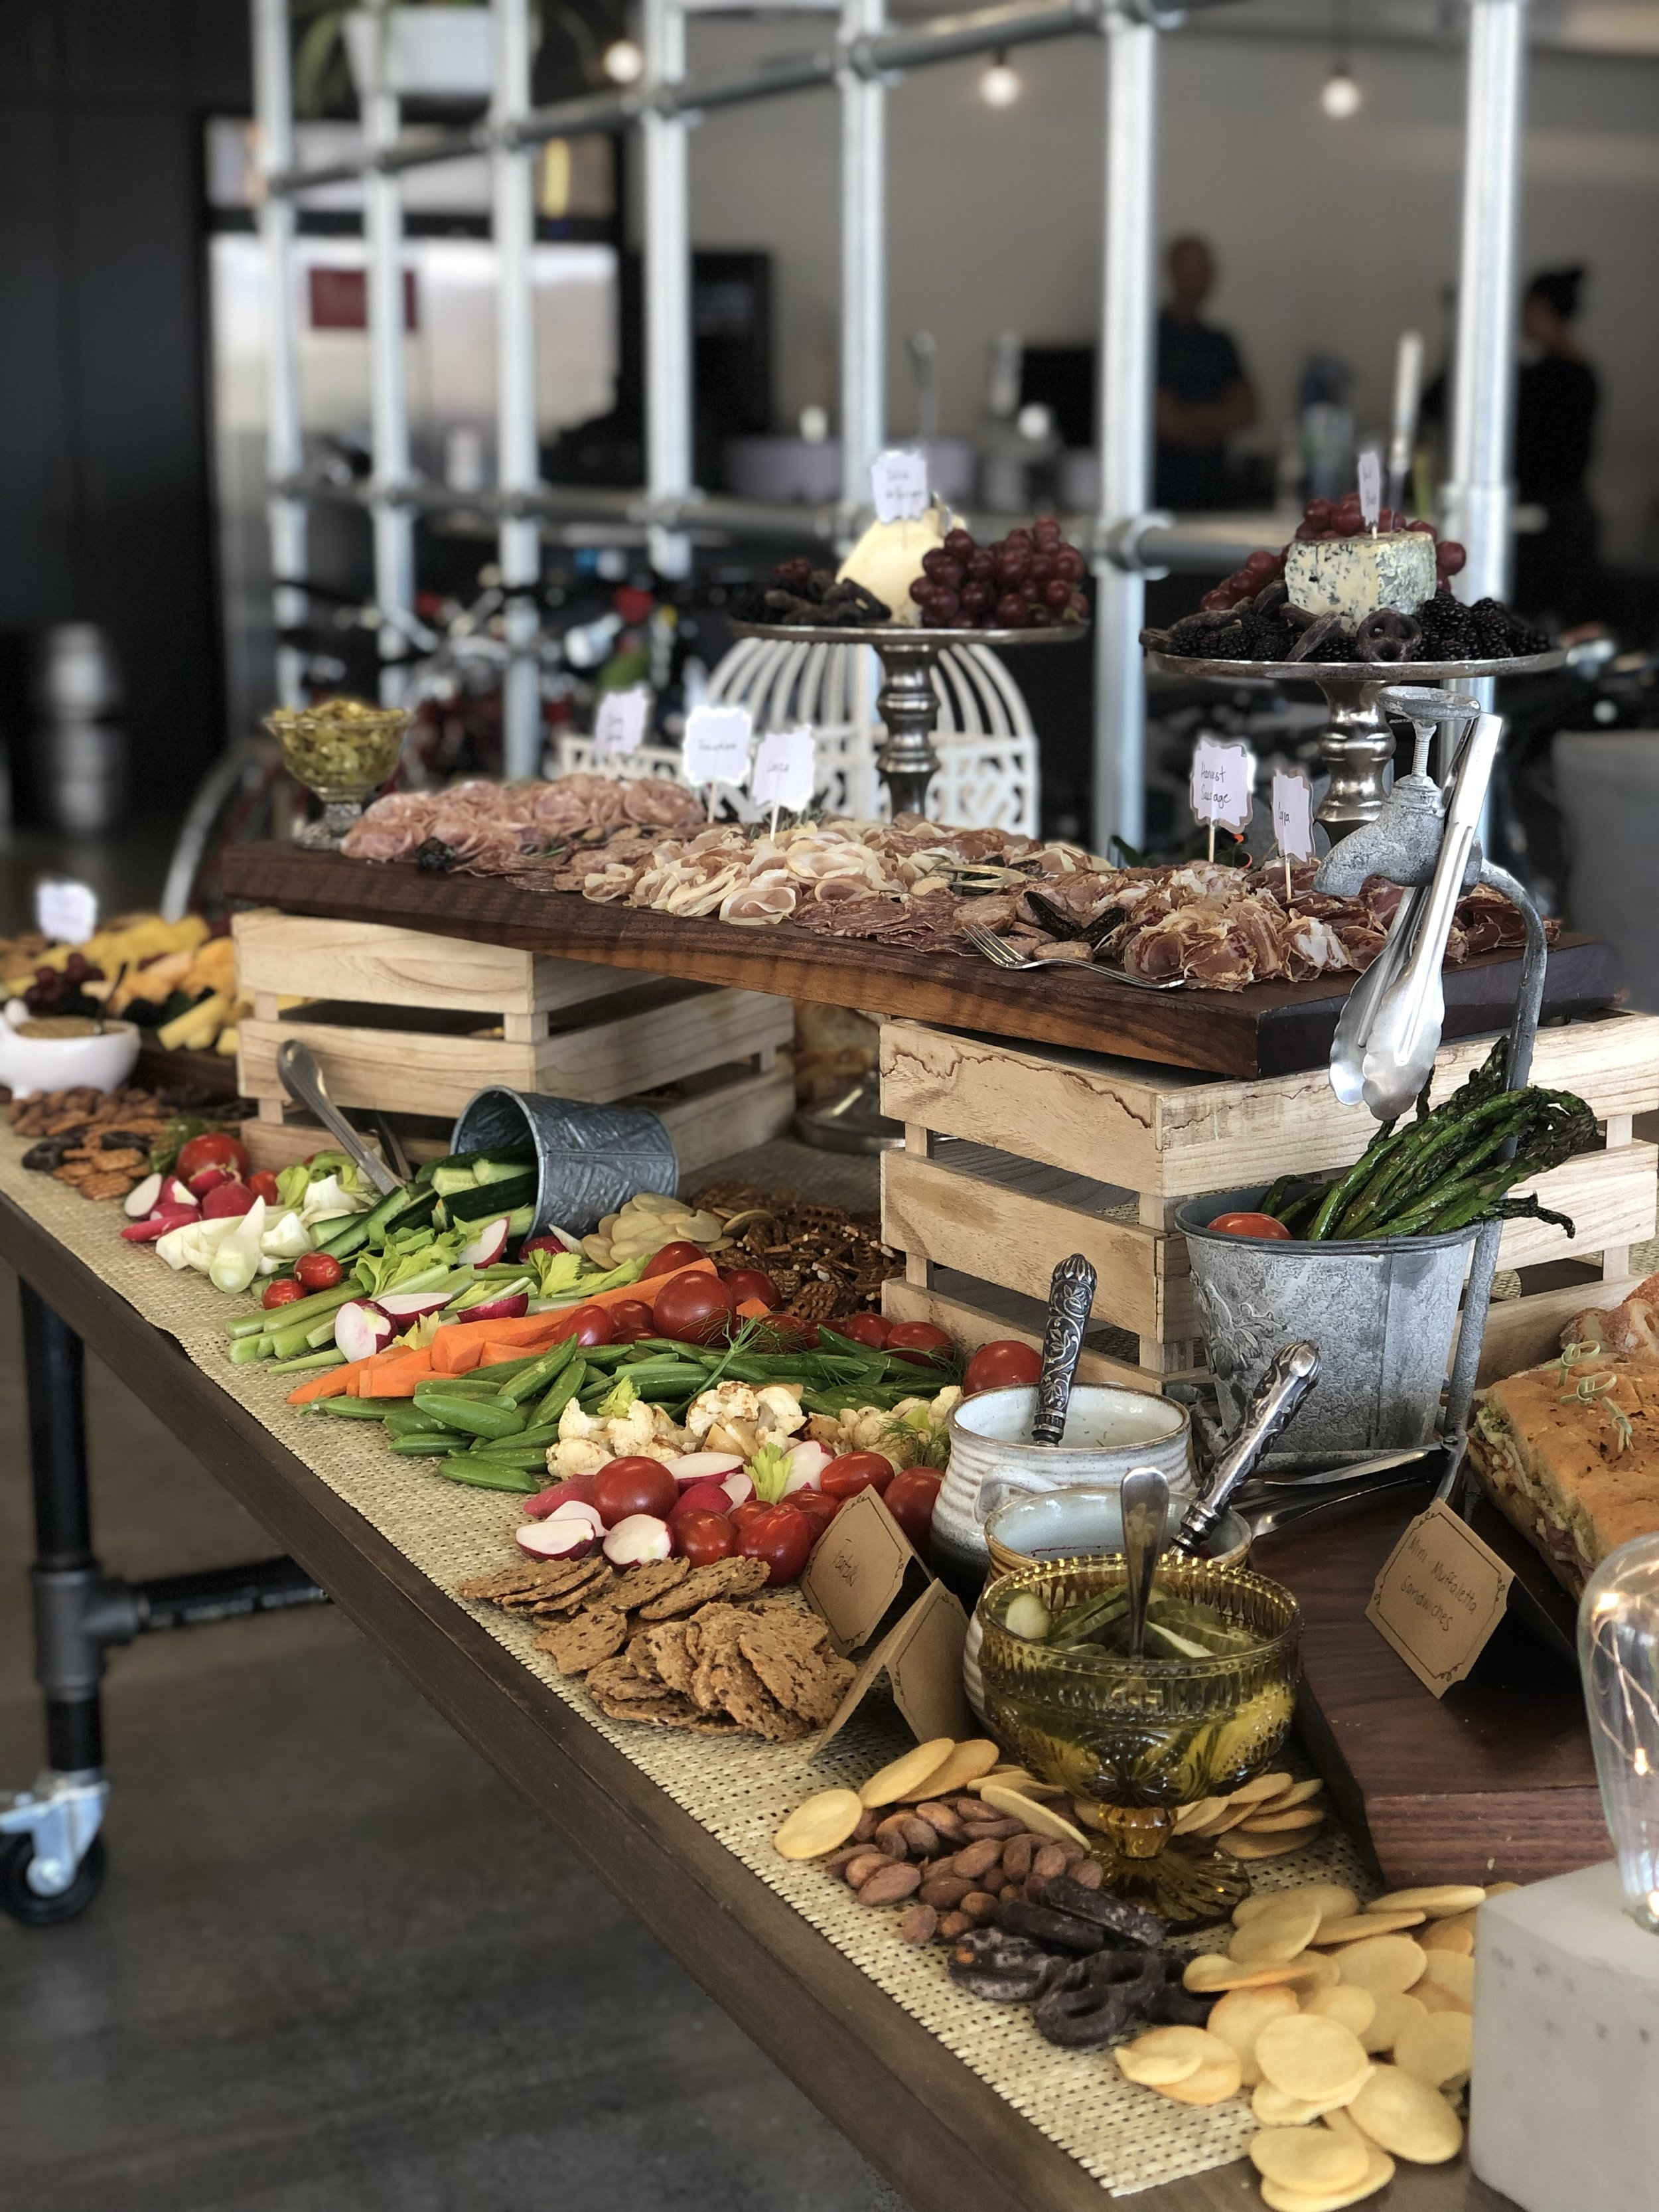 PRIVATE CATERING & EVENTS - AVAILABLE AS FAMILY STYLE DINING OR BUFFET FOOD STATIONS